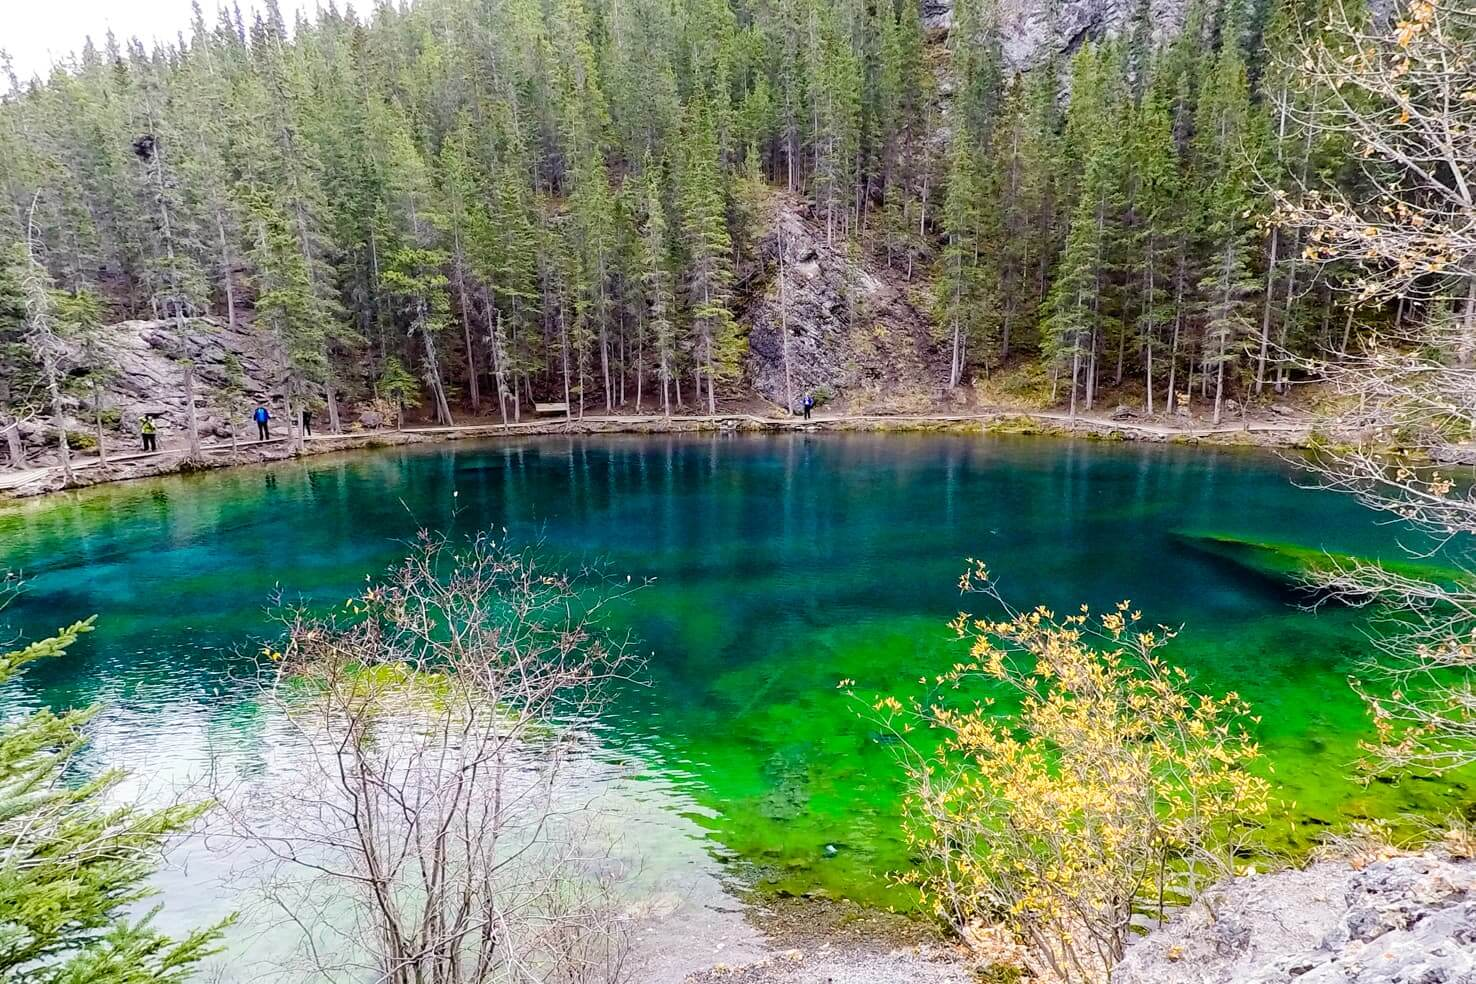 Western Canada Road Trip from Calgary to Vancouver - Grassi Lakes Hike